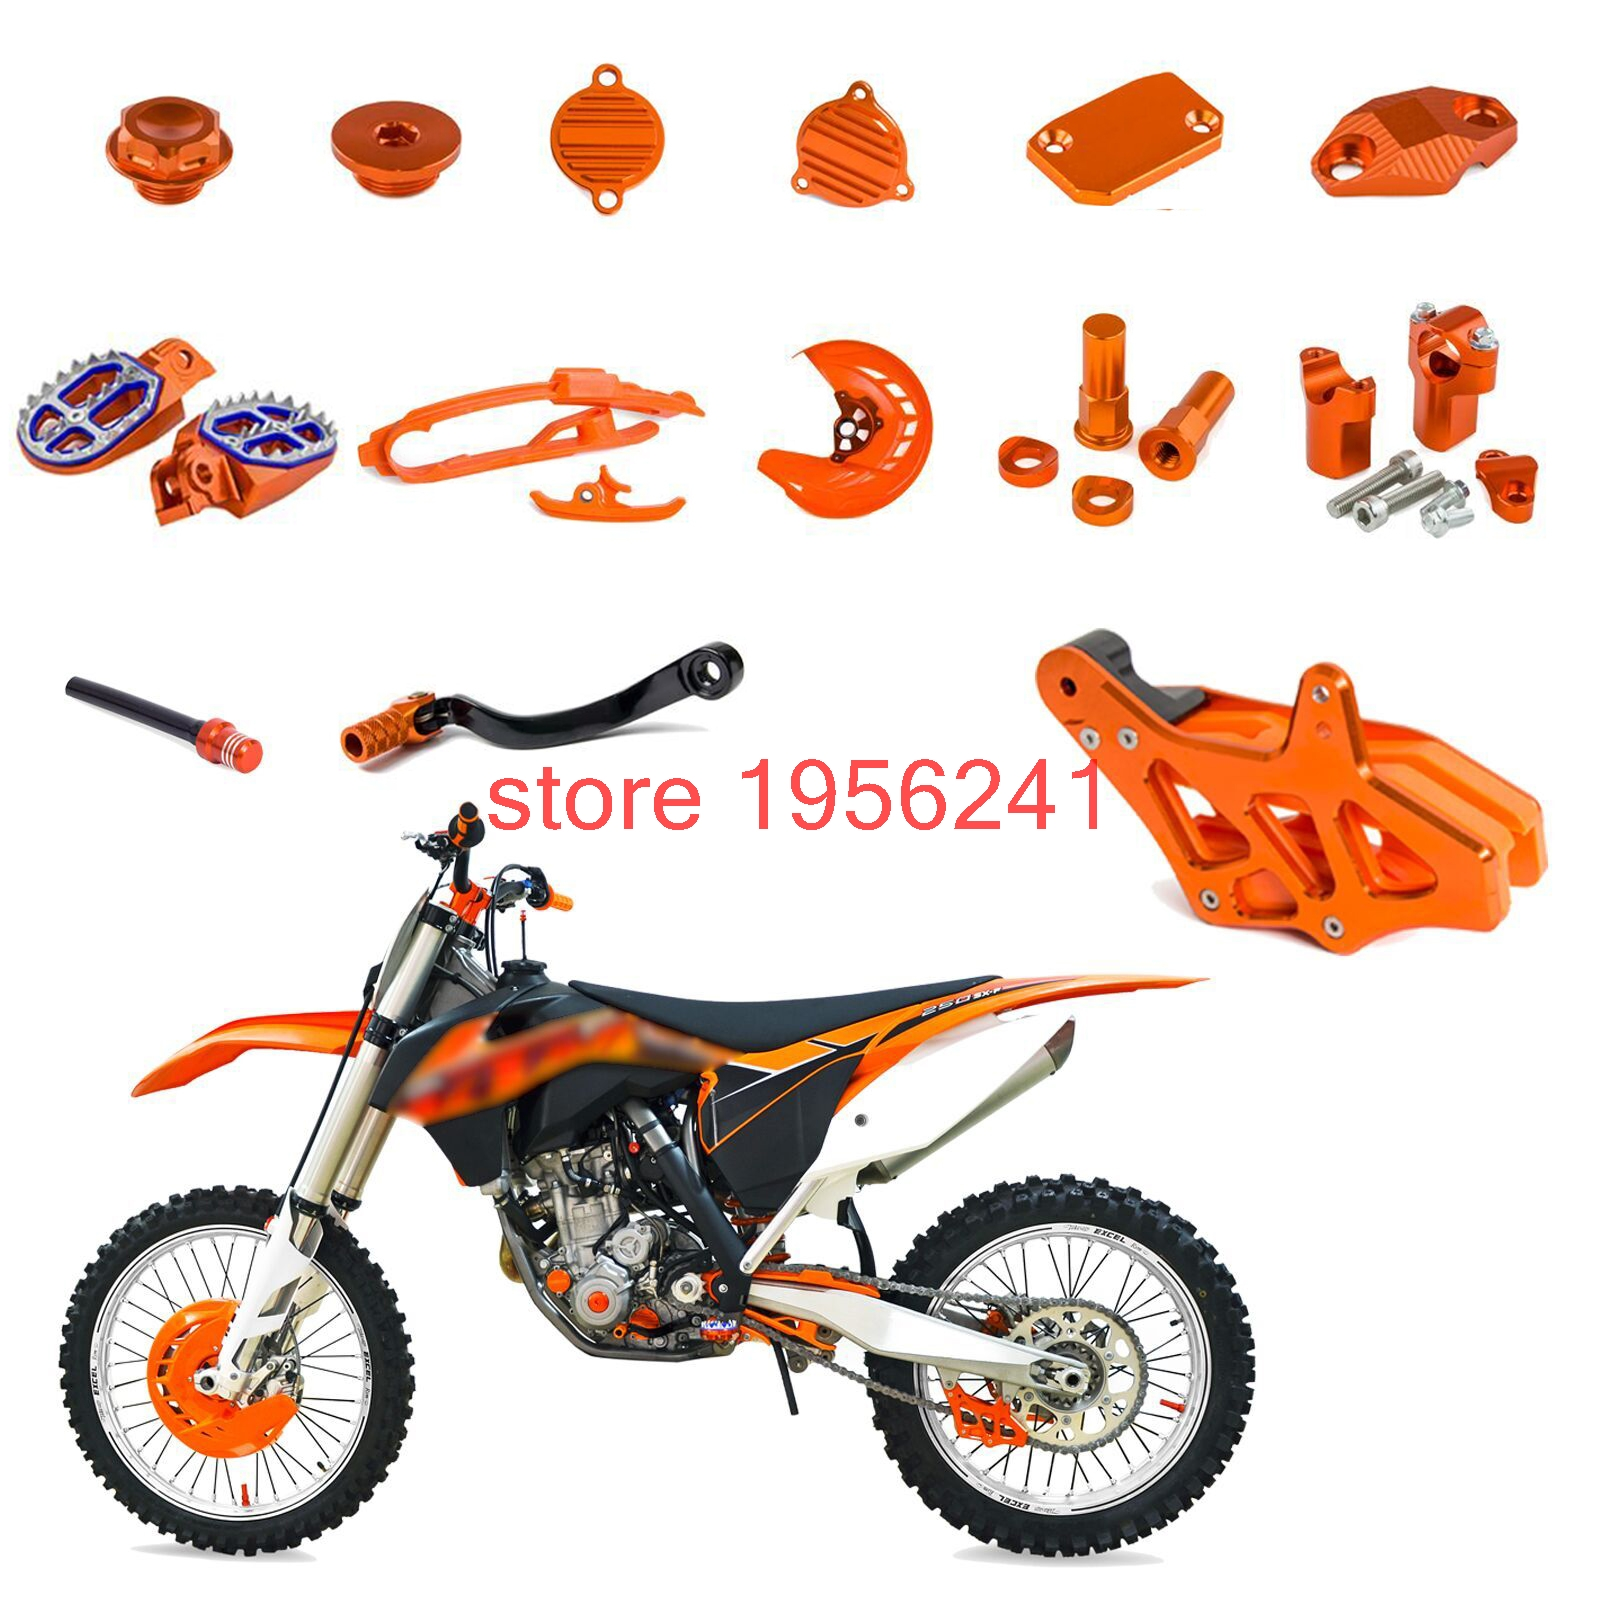 Gear Shifter & Brake Hose Clamp & Reservoir Cover & Chain Guide &  Foot Pegs & Other For KTM 250 SXF SX-F EXC-F XCF XC-F XCF-W working guide to reservoir exploration and appraisal